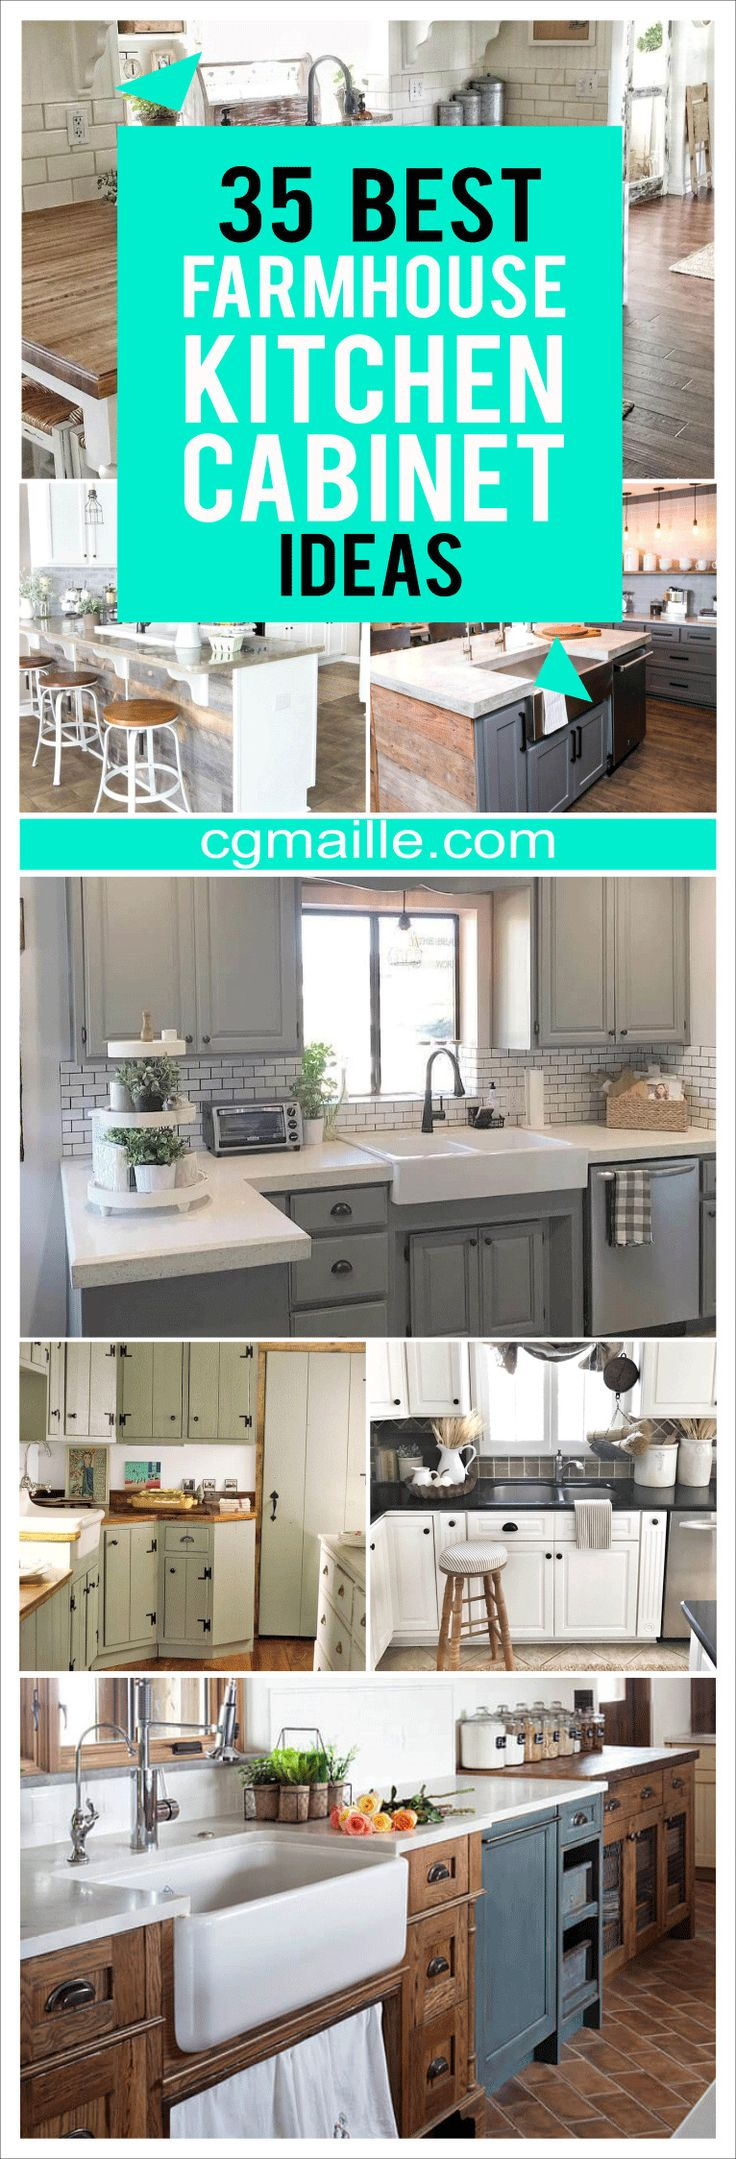 3657 best Kitchen ✅✅✅ images on Pinterest   Kitchens, Country ...